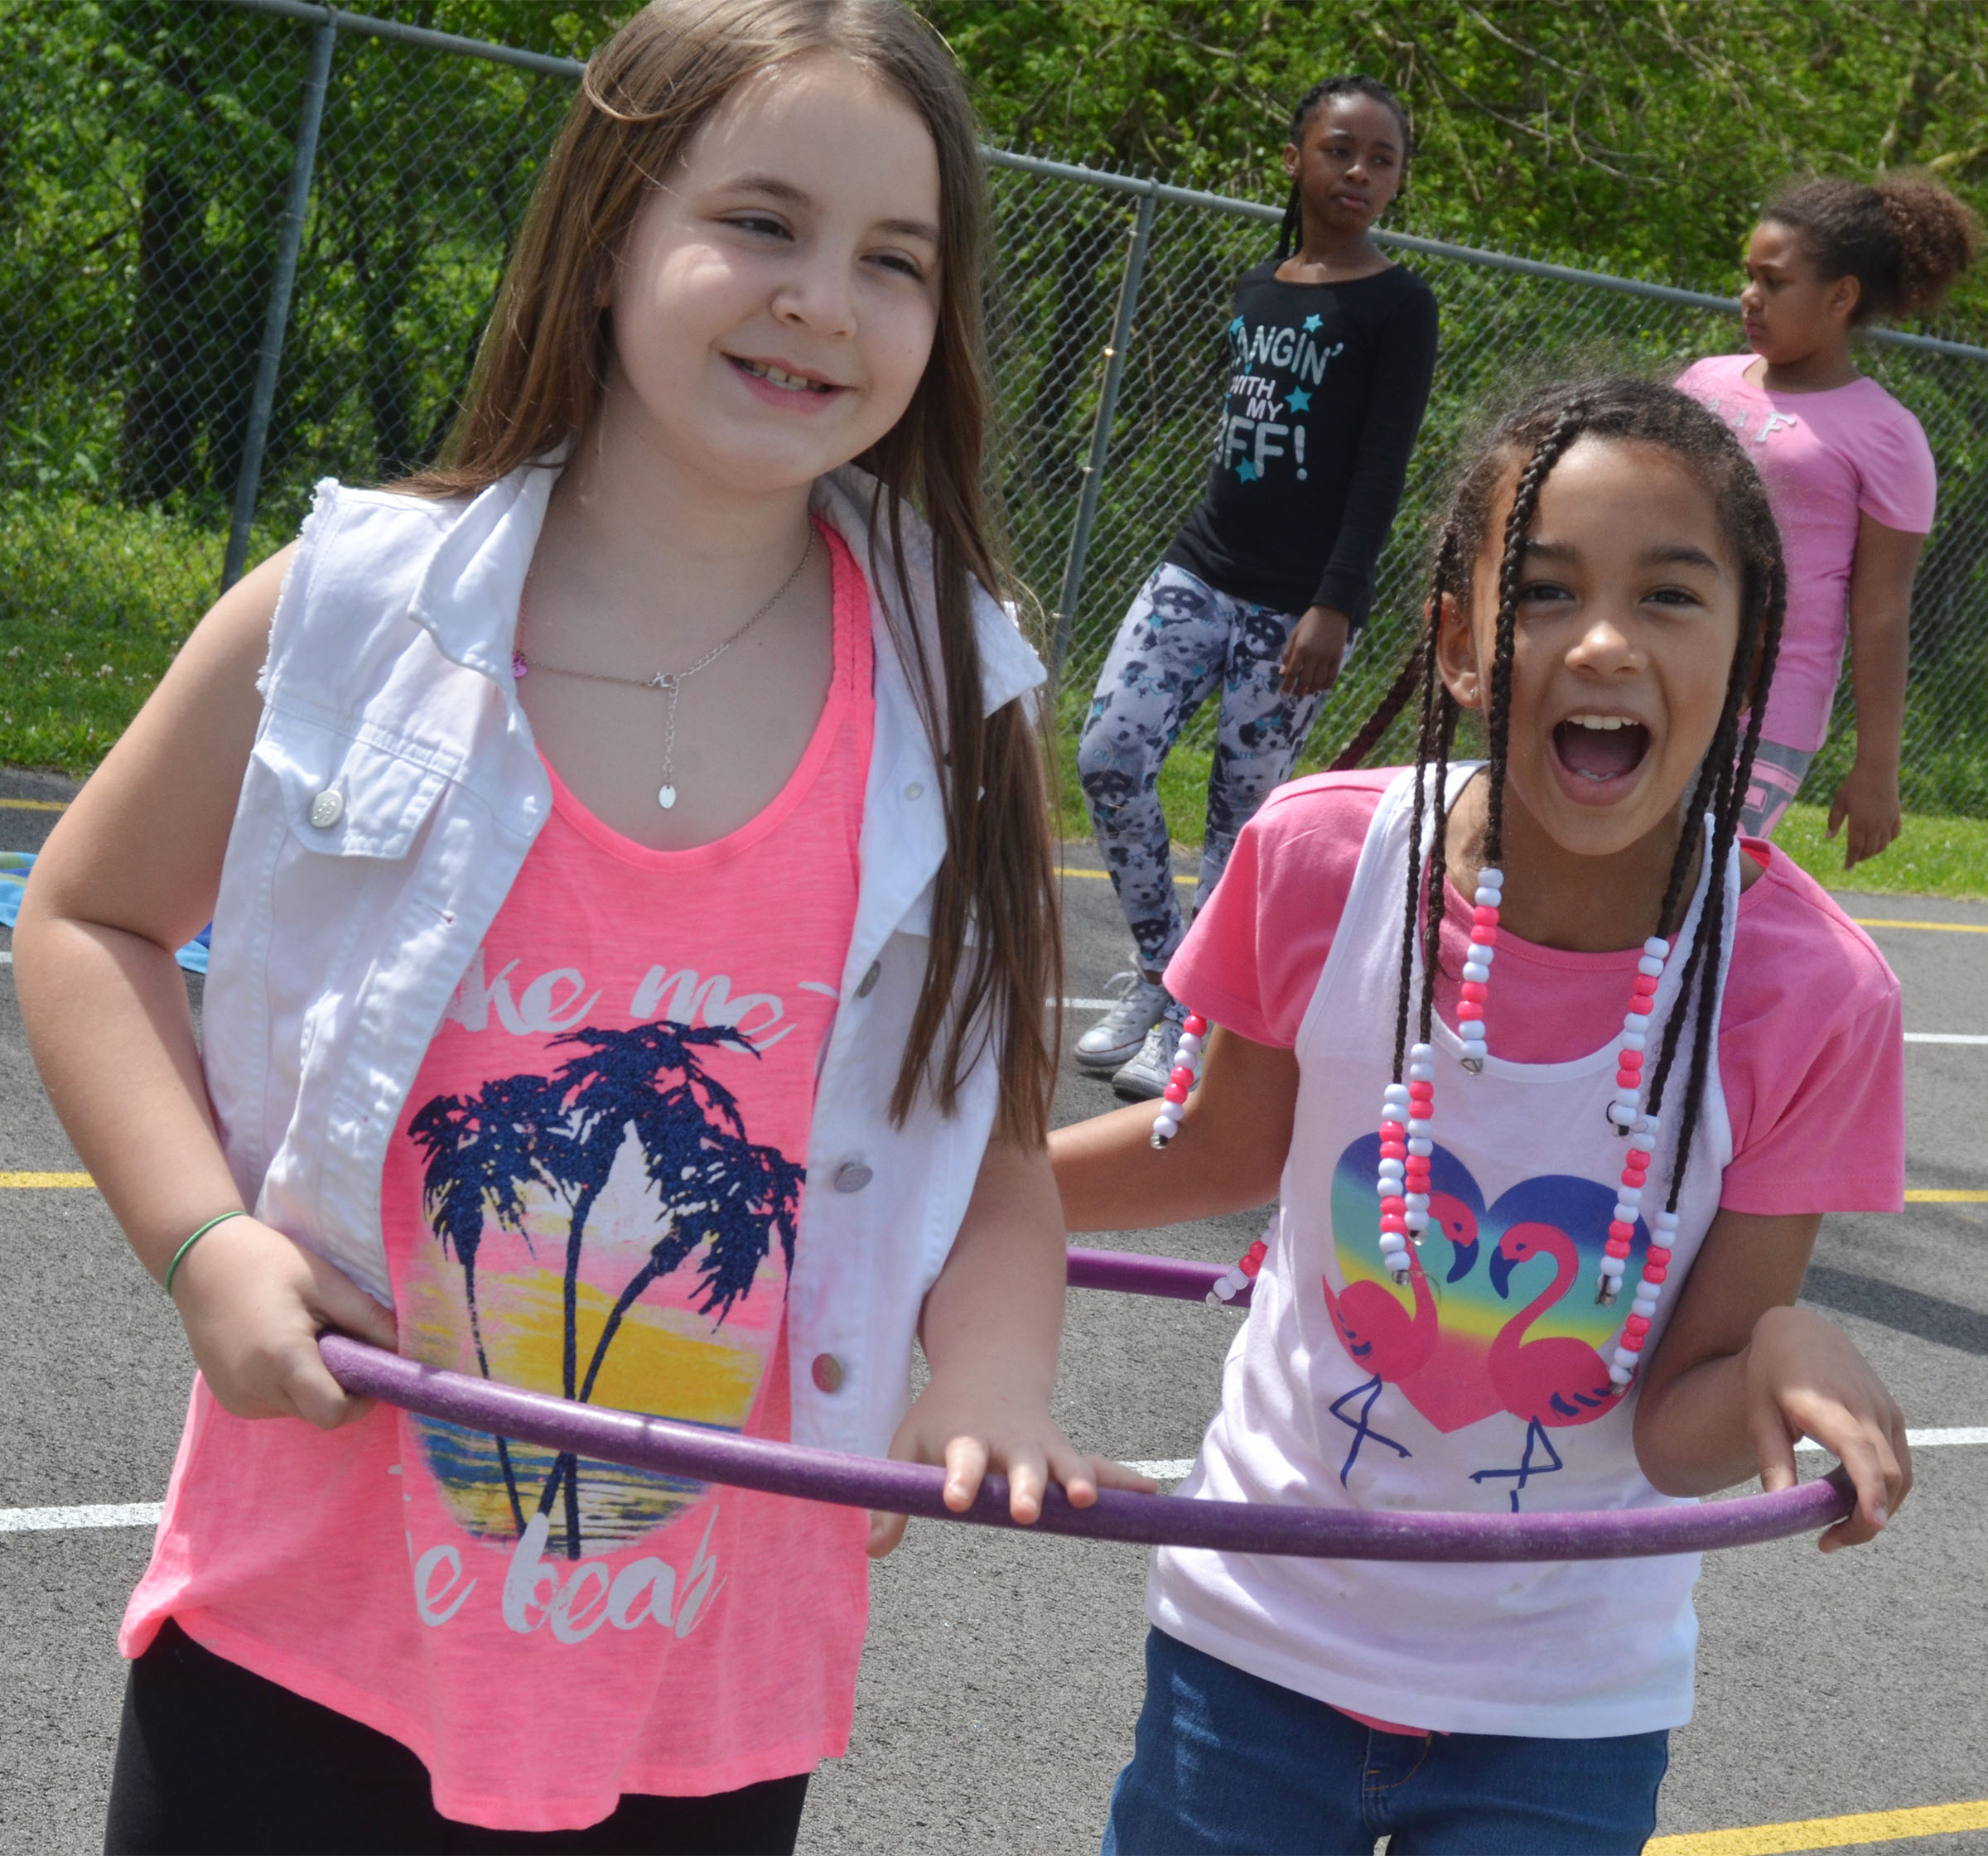 CES third-graders Alexis Roddy, at left, and De'Asia Fisher share a hula hoop.